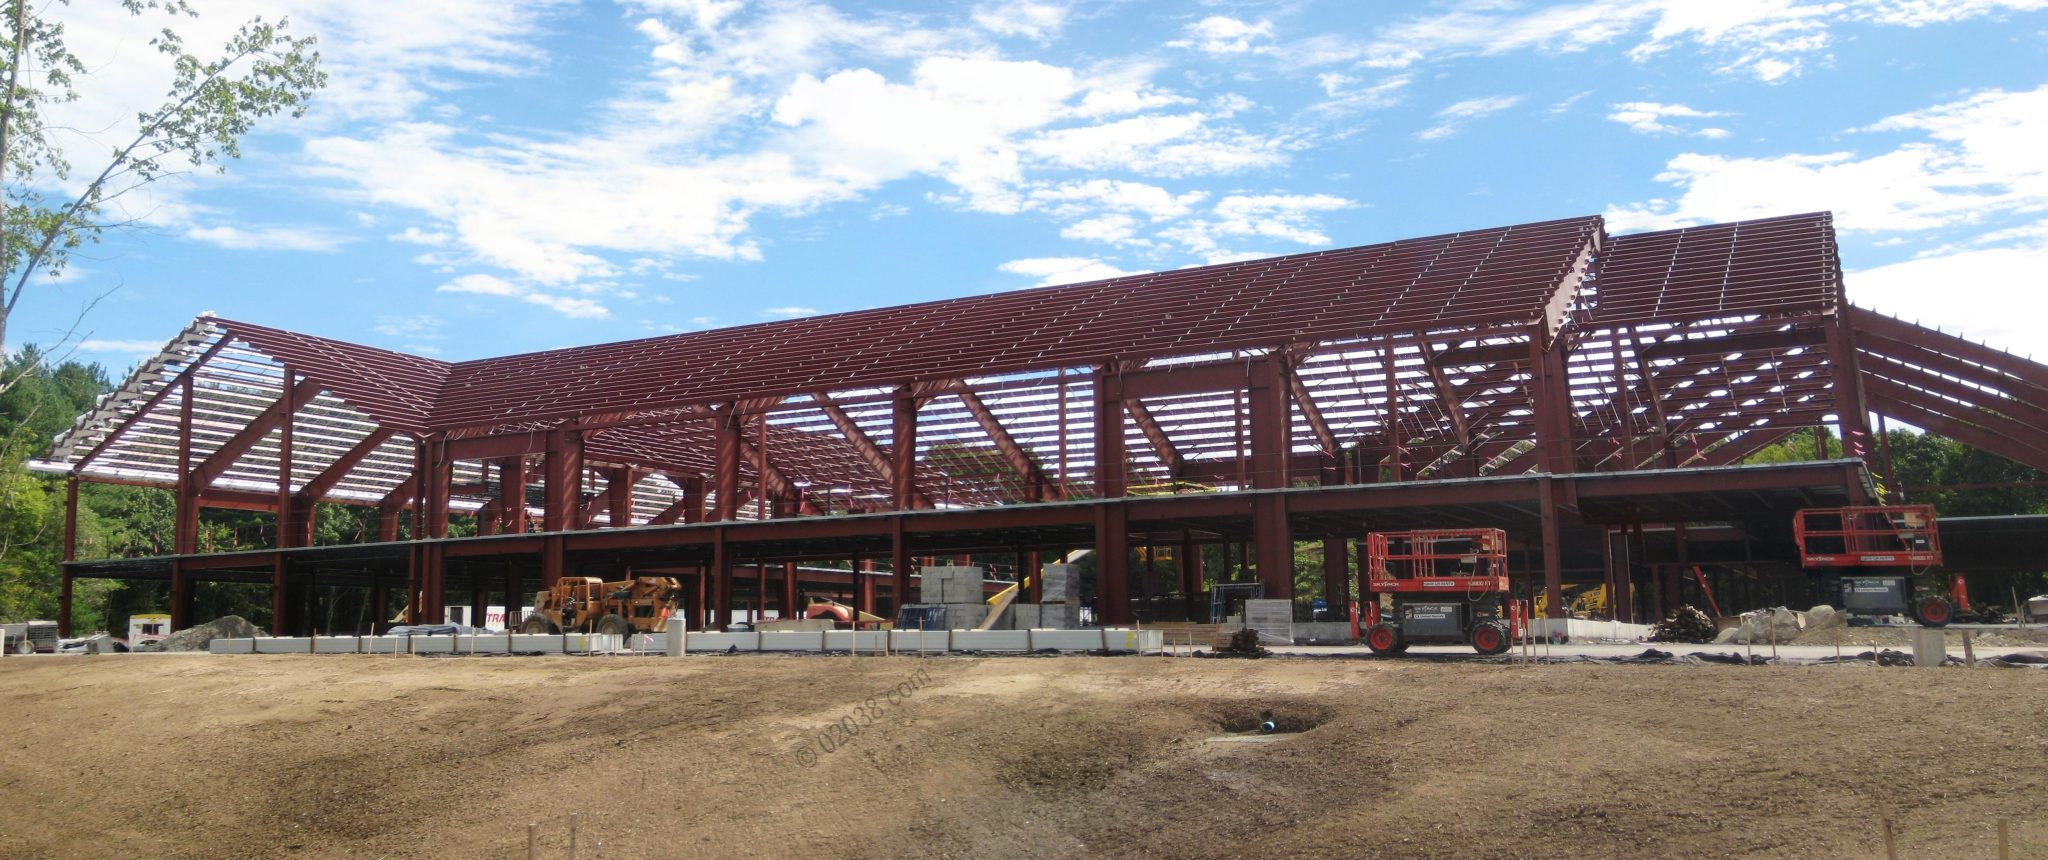 New home for Franklin's charter school taking shape | Franklin, MA